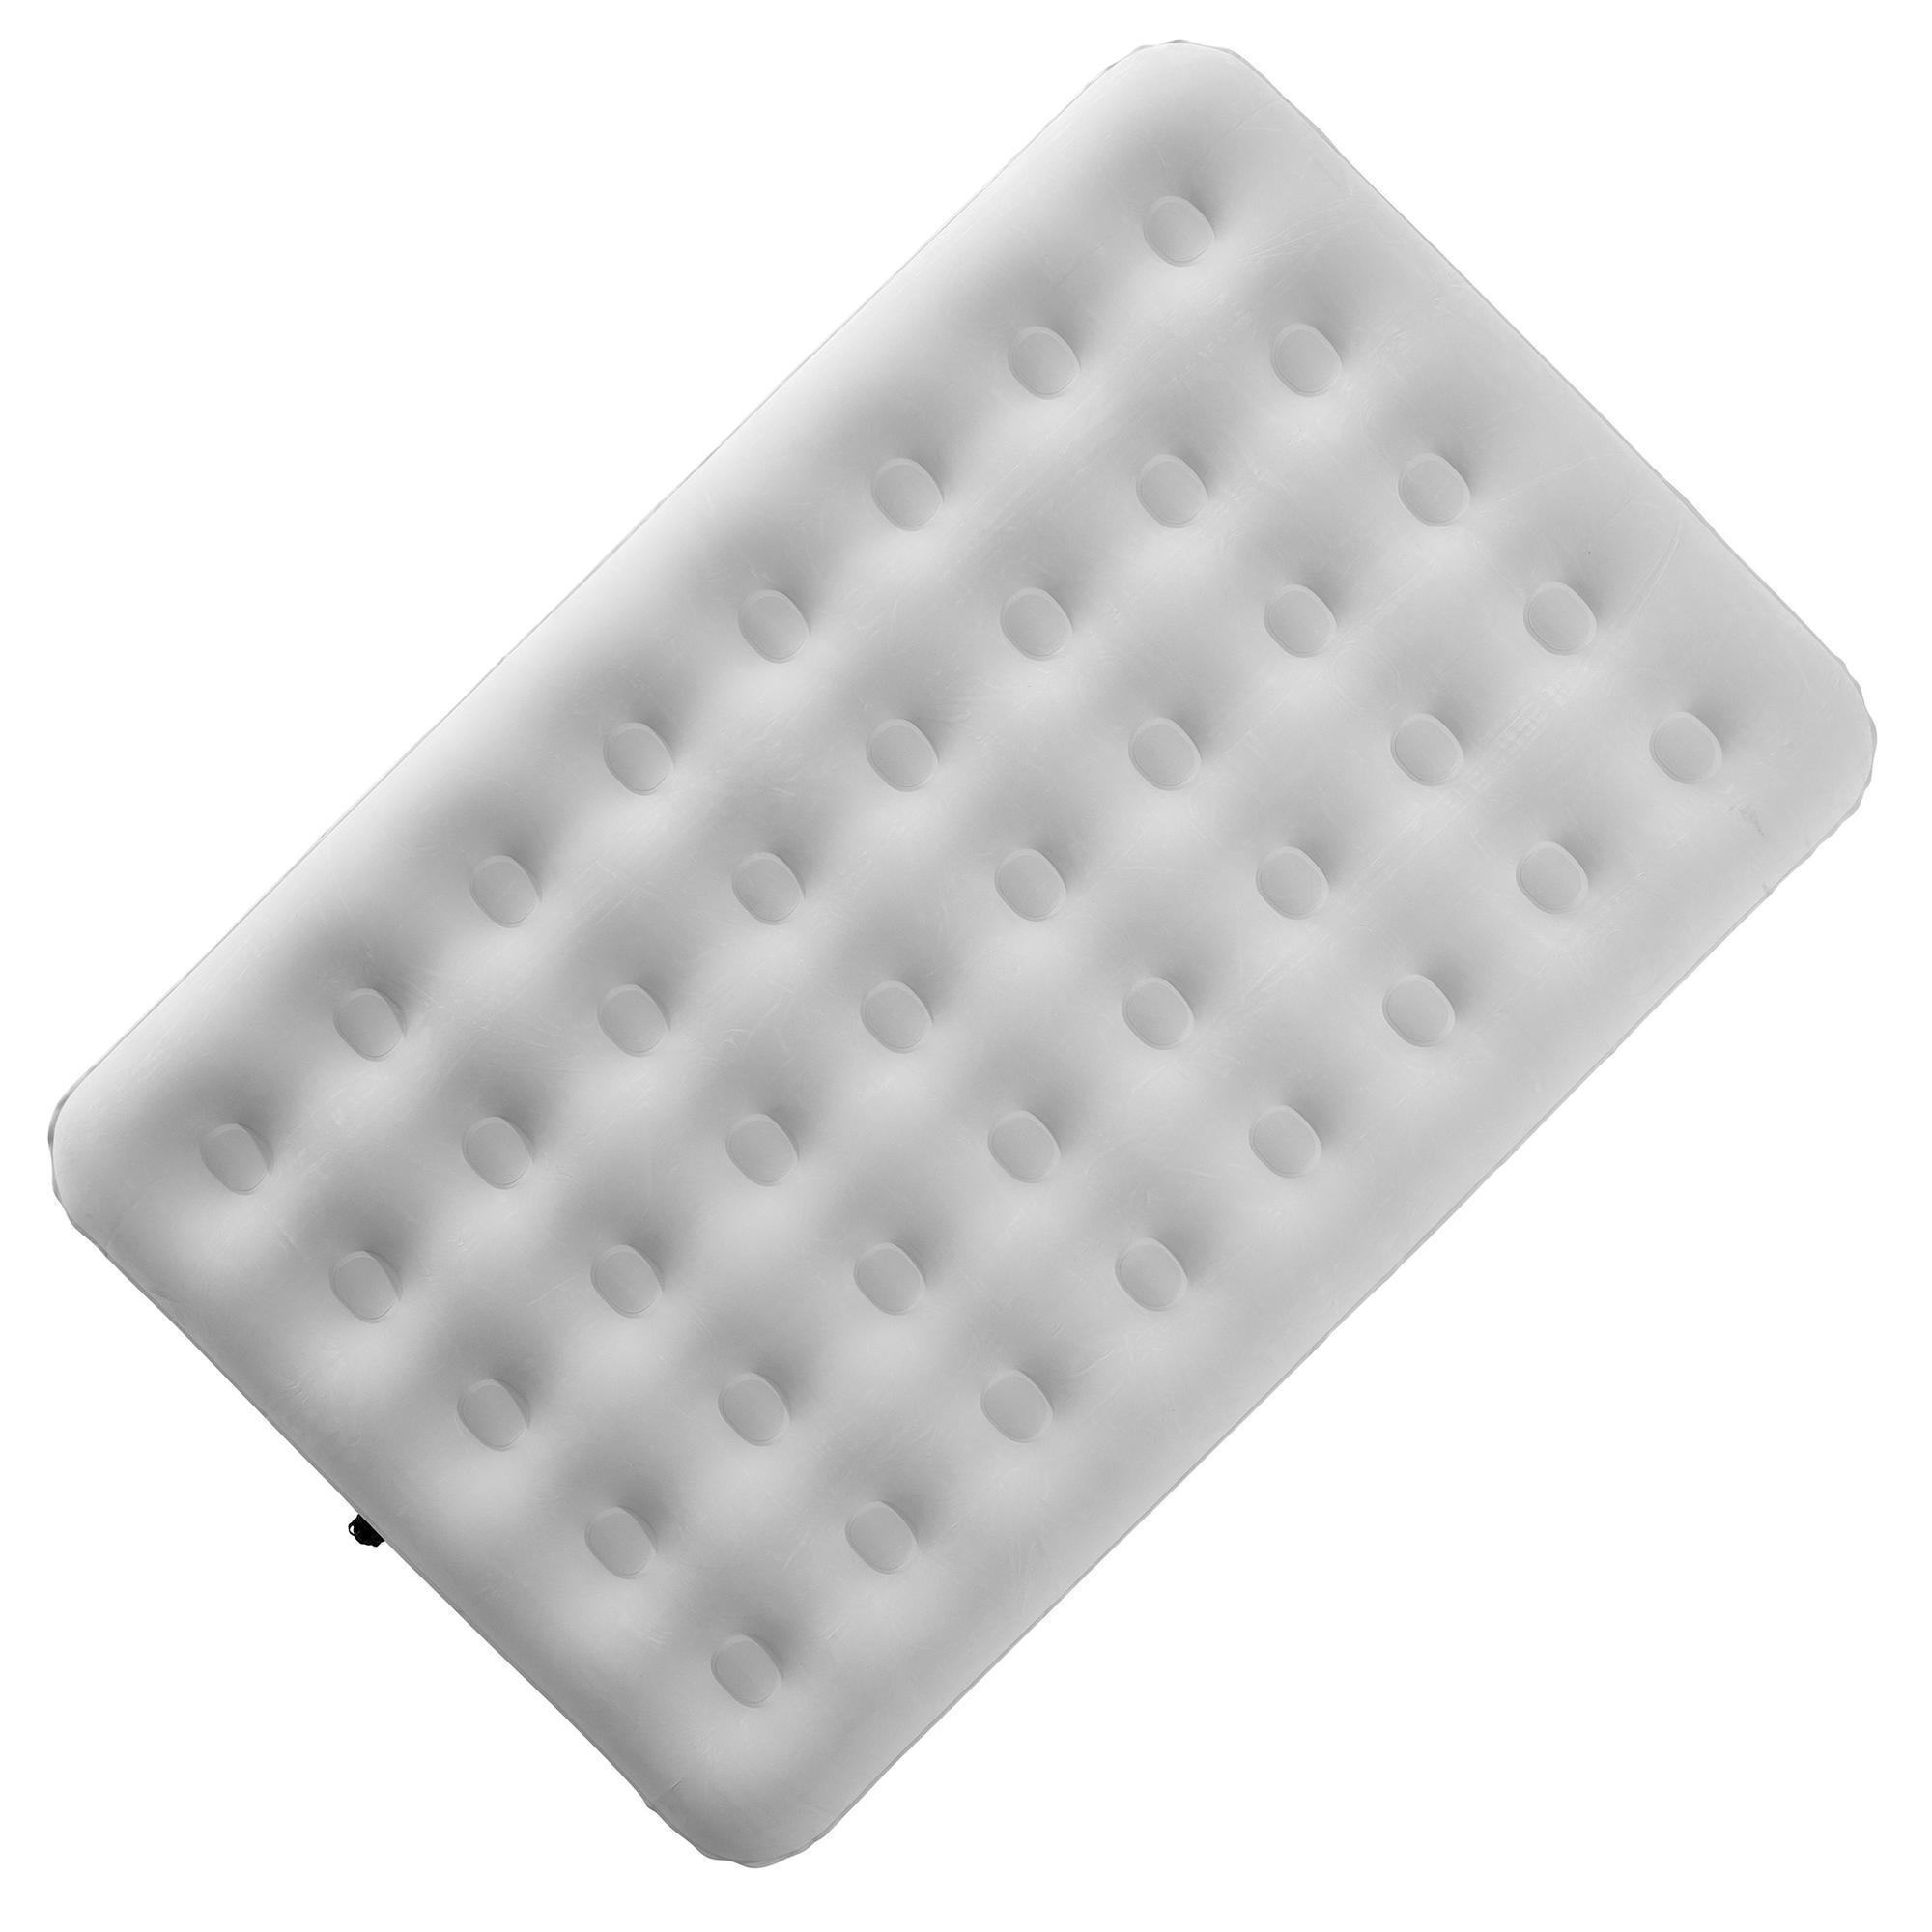 series mattress product with healtcare easy air pump my ripple shoppe easyair